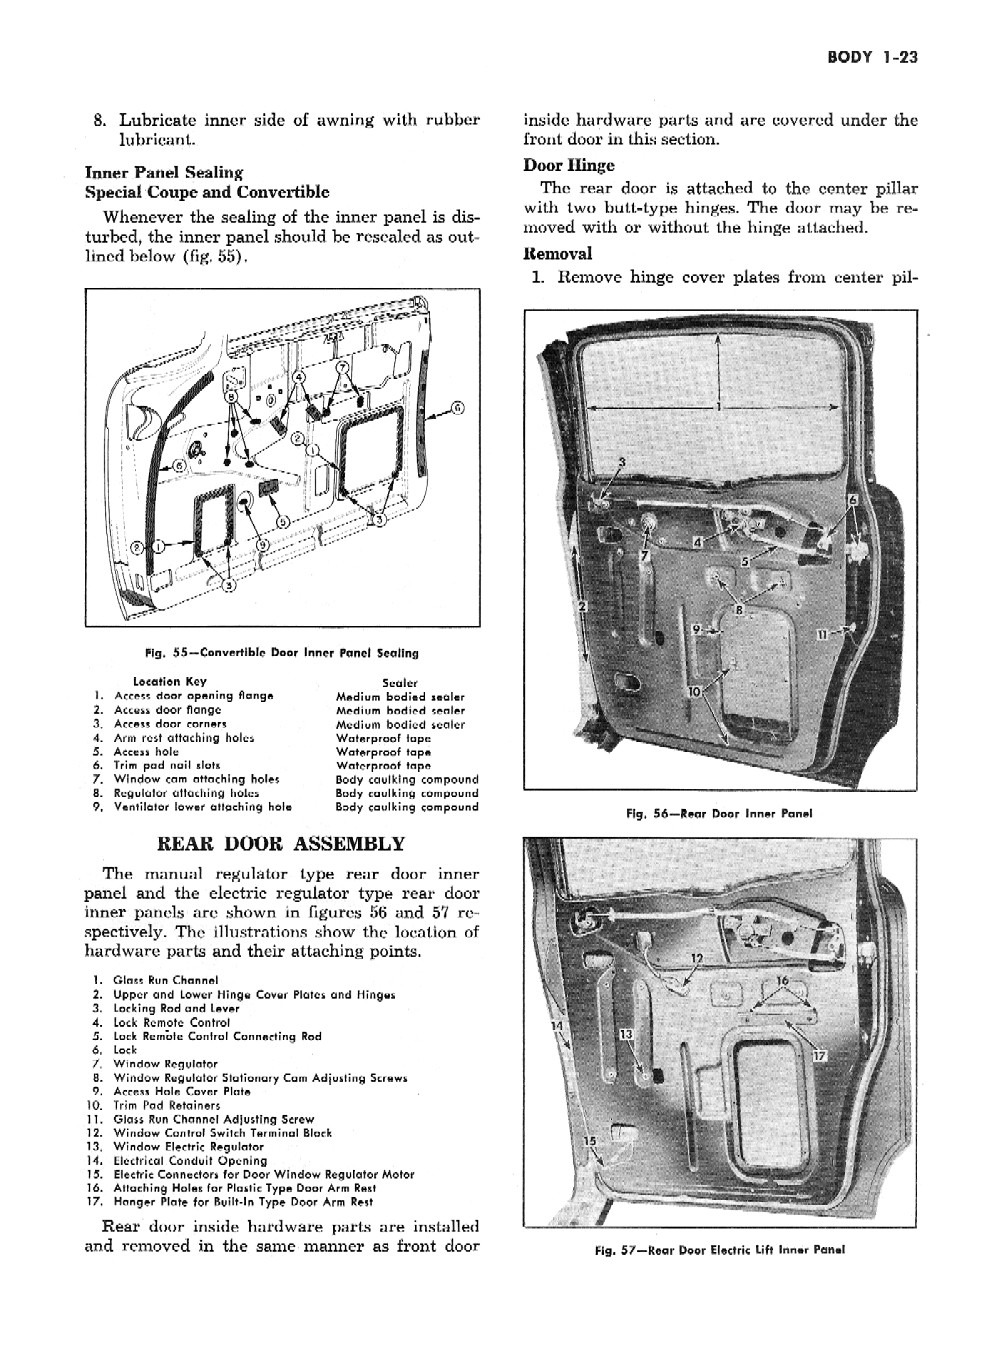 1957 Chevy Fuse Panel Diagram On 57 Chevy Bel Air Fuse Panel Diagram